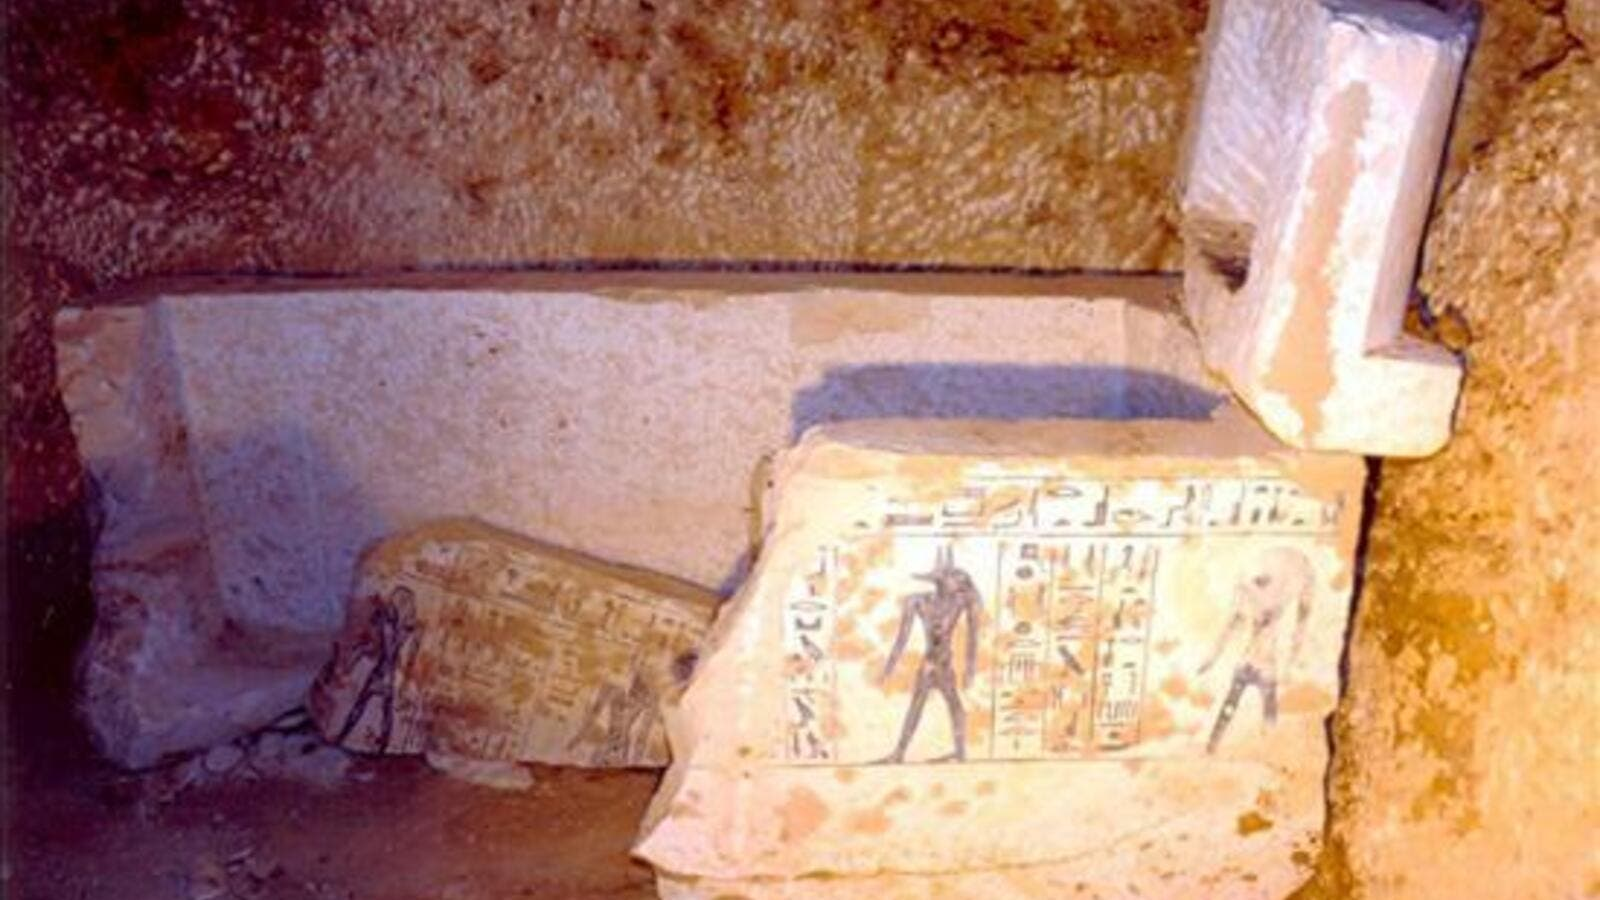 Eight tombs containing 40 sarcophagi and roughly 1,000 figurines had been unearthed. (AFP/ File Photo)